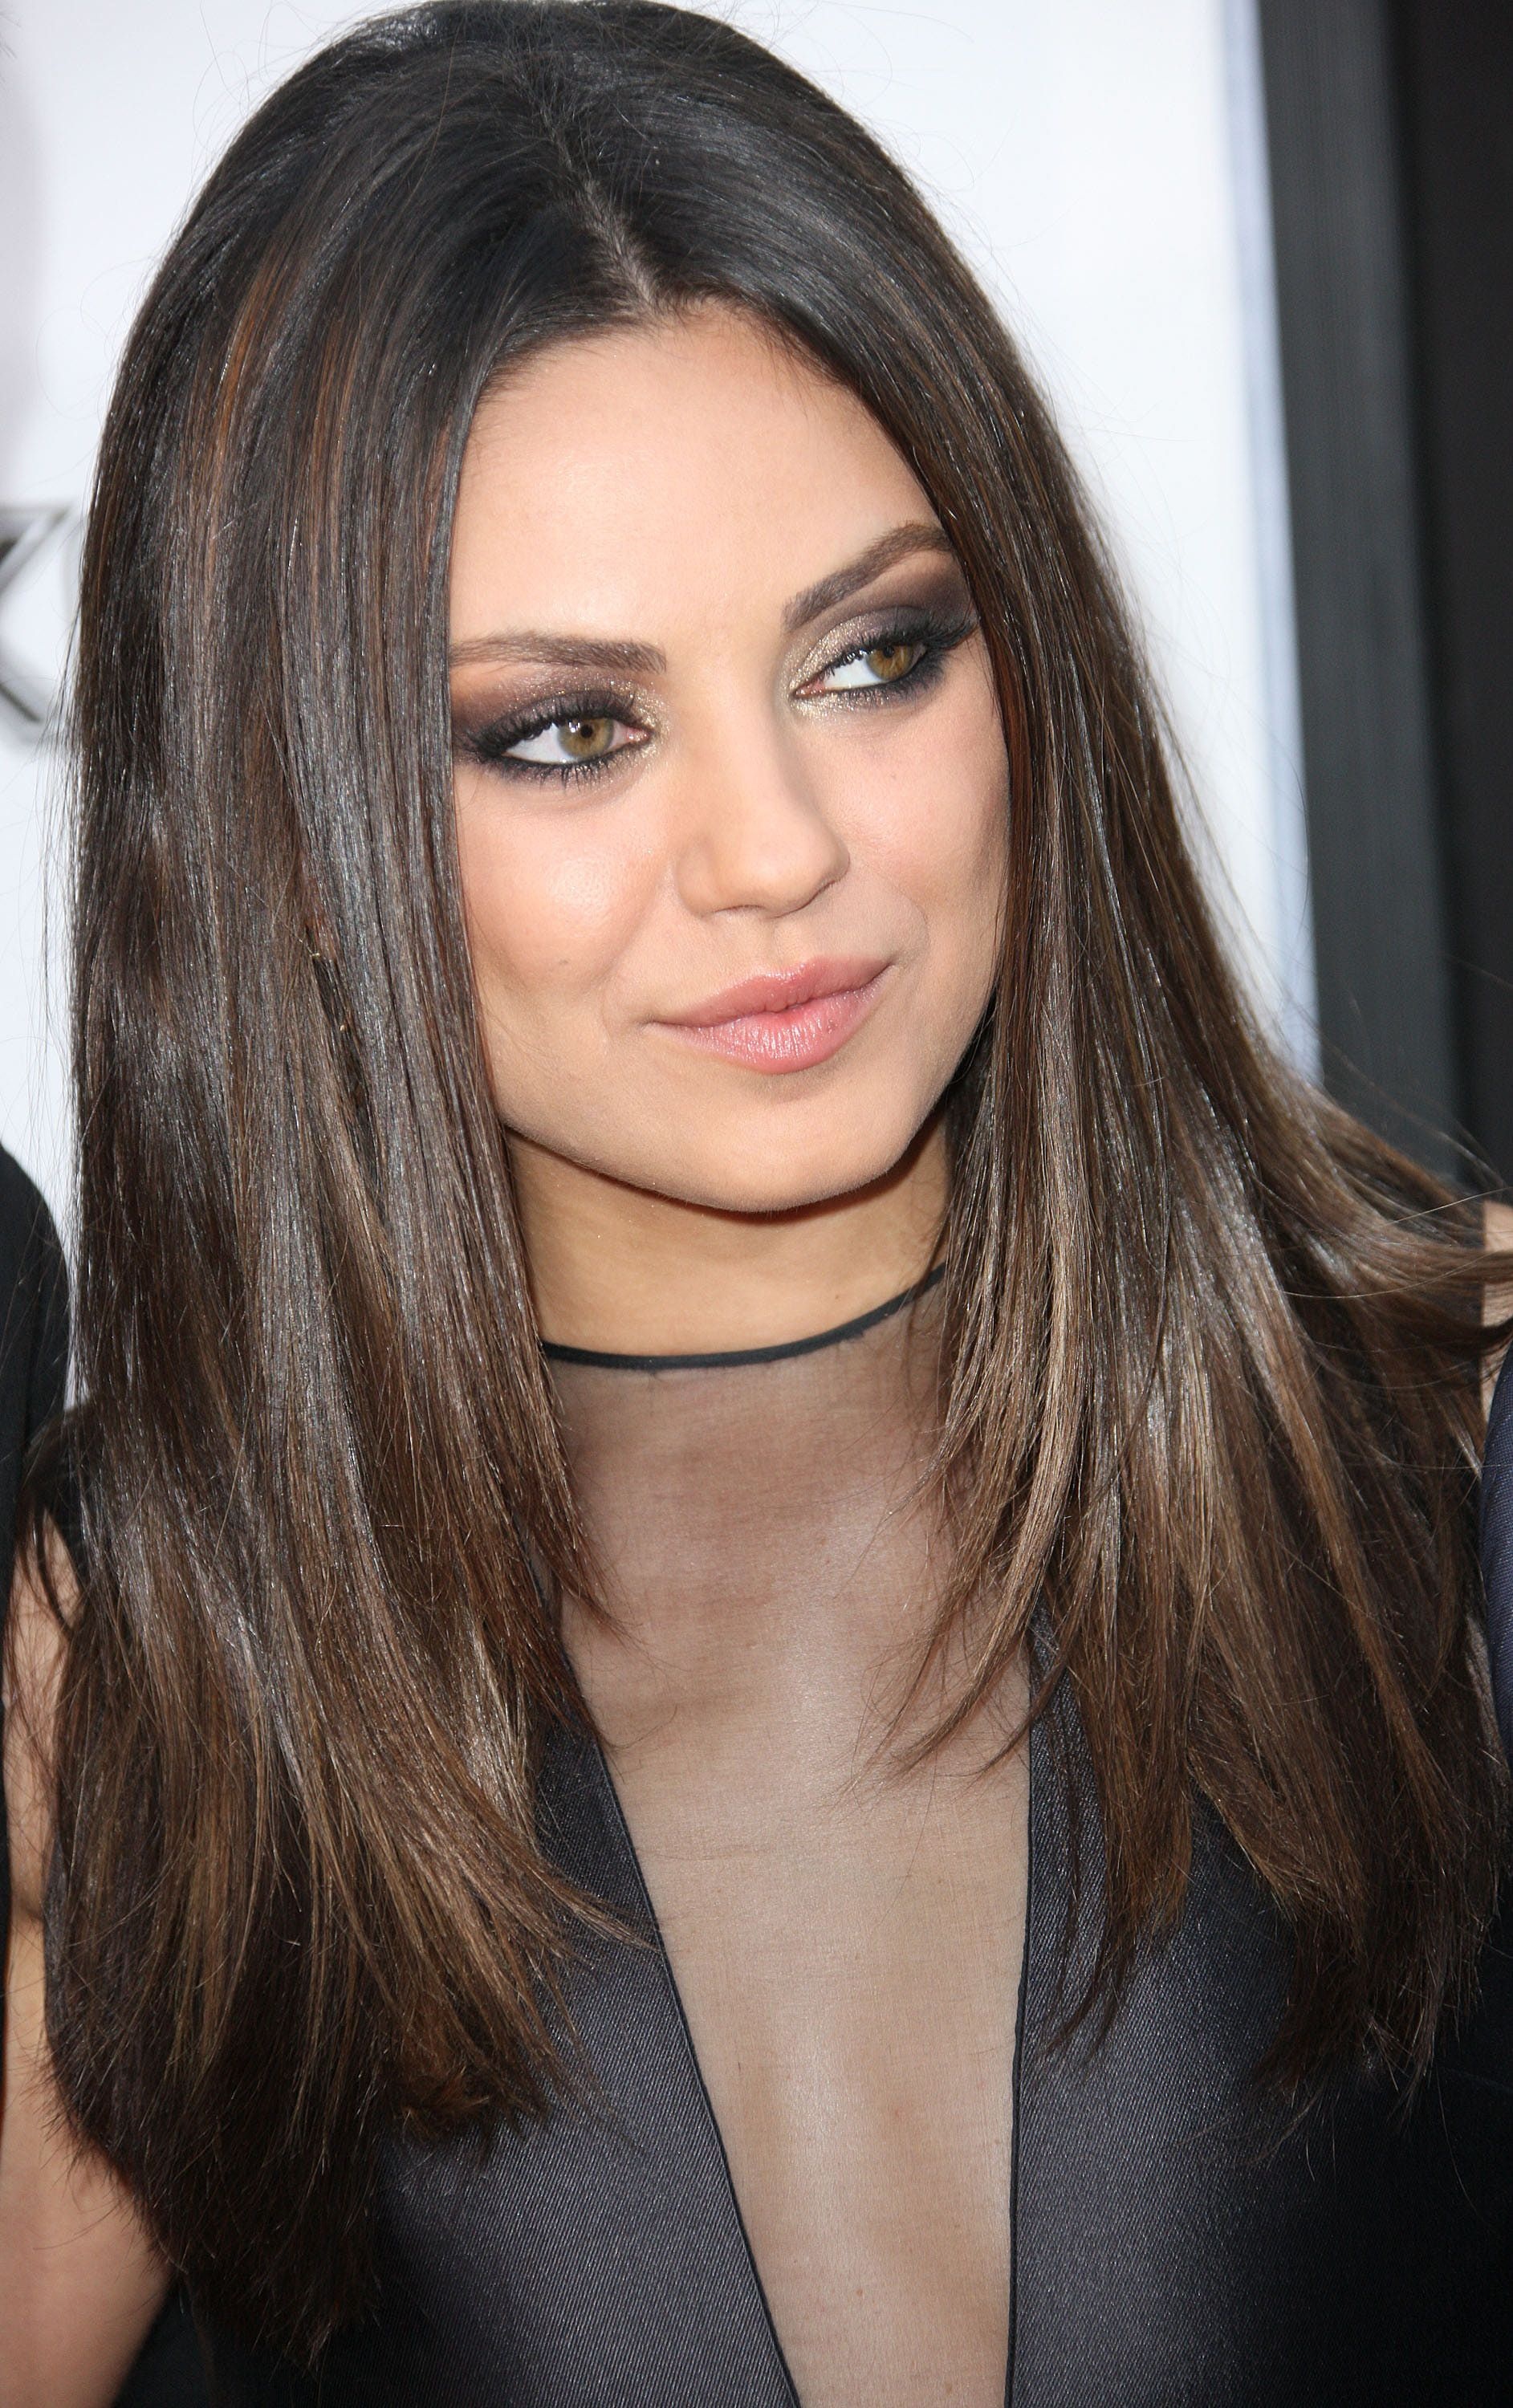 Hairstyle For Round Face With Long Hair Yoohair Straight Hair With Long Layered Jpg 1885 3000 Thick Hair Styles Long Thin Hair Thin Straight Hair